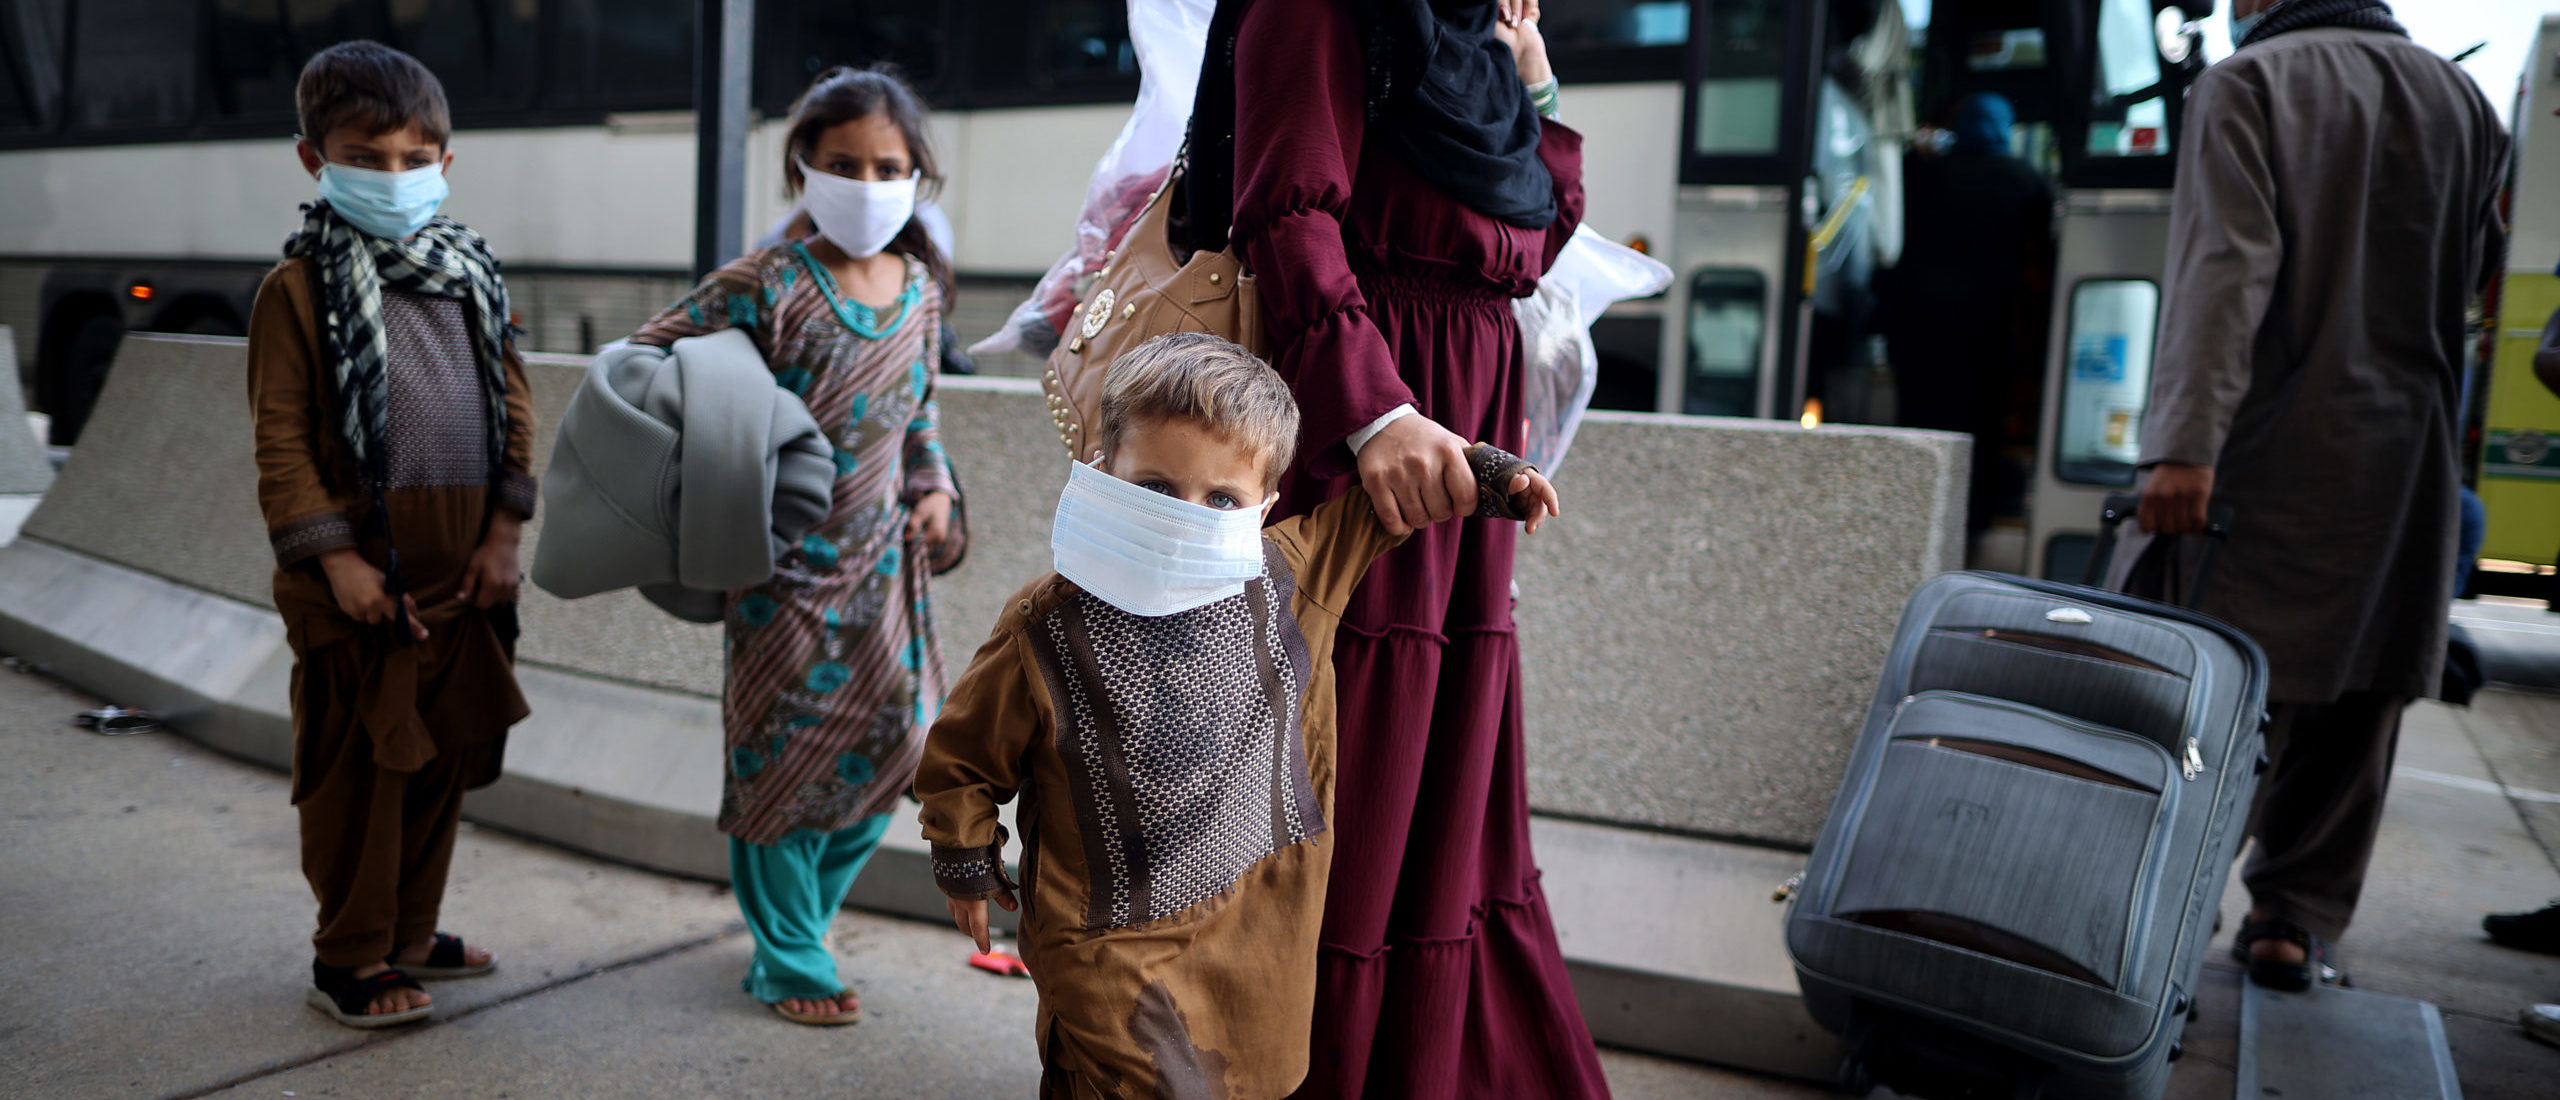 """DULLES, VIRGINIA - AUGUST 27: Refugees board buses that will take them to a processing center at Dulles International Airport after being evacuated from Kabul following the Taliban takeover of Afghanistan August 27, 2021 in Dulles, Virginia. Refugees continued to arrive in the United States one day after twin suicide bombings at the gates of the airport in Kabul killed 13 U.S. military service members and nearly 100 Afghans. """"We will not forgive,"""" President Joe Biden warned ISIS, who claimed responsibility for the attacks. """"We will not forget. We will hunt you down and make you pay."""" (Photo by Chip Somodevilla/Getty Images)"""